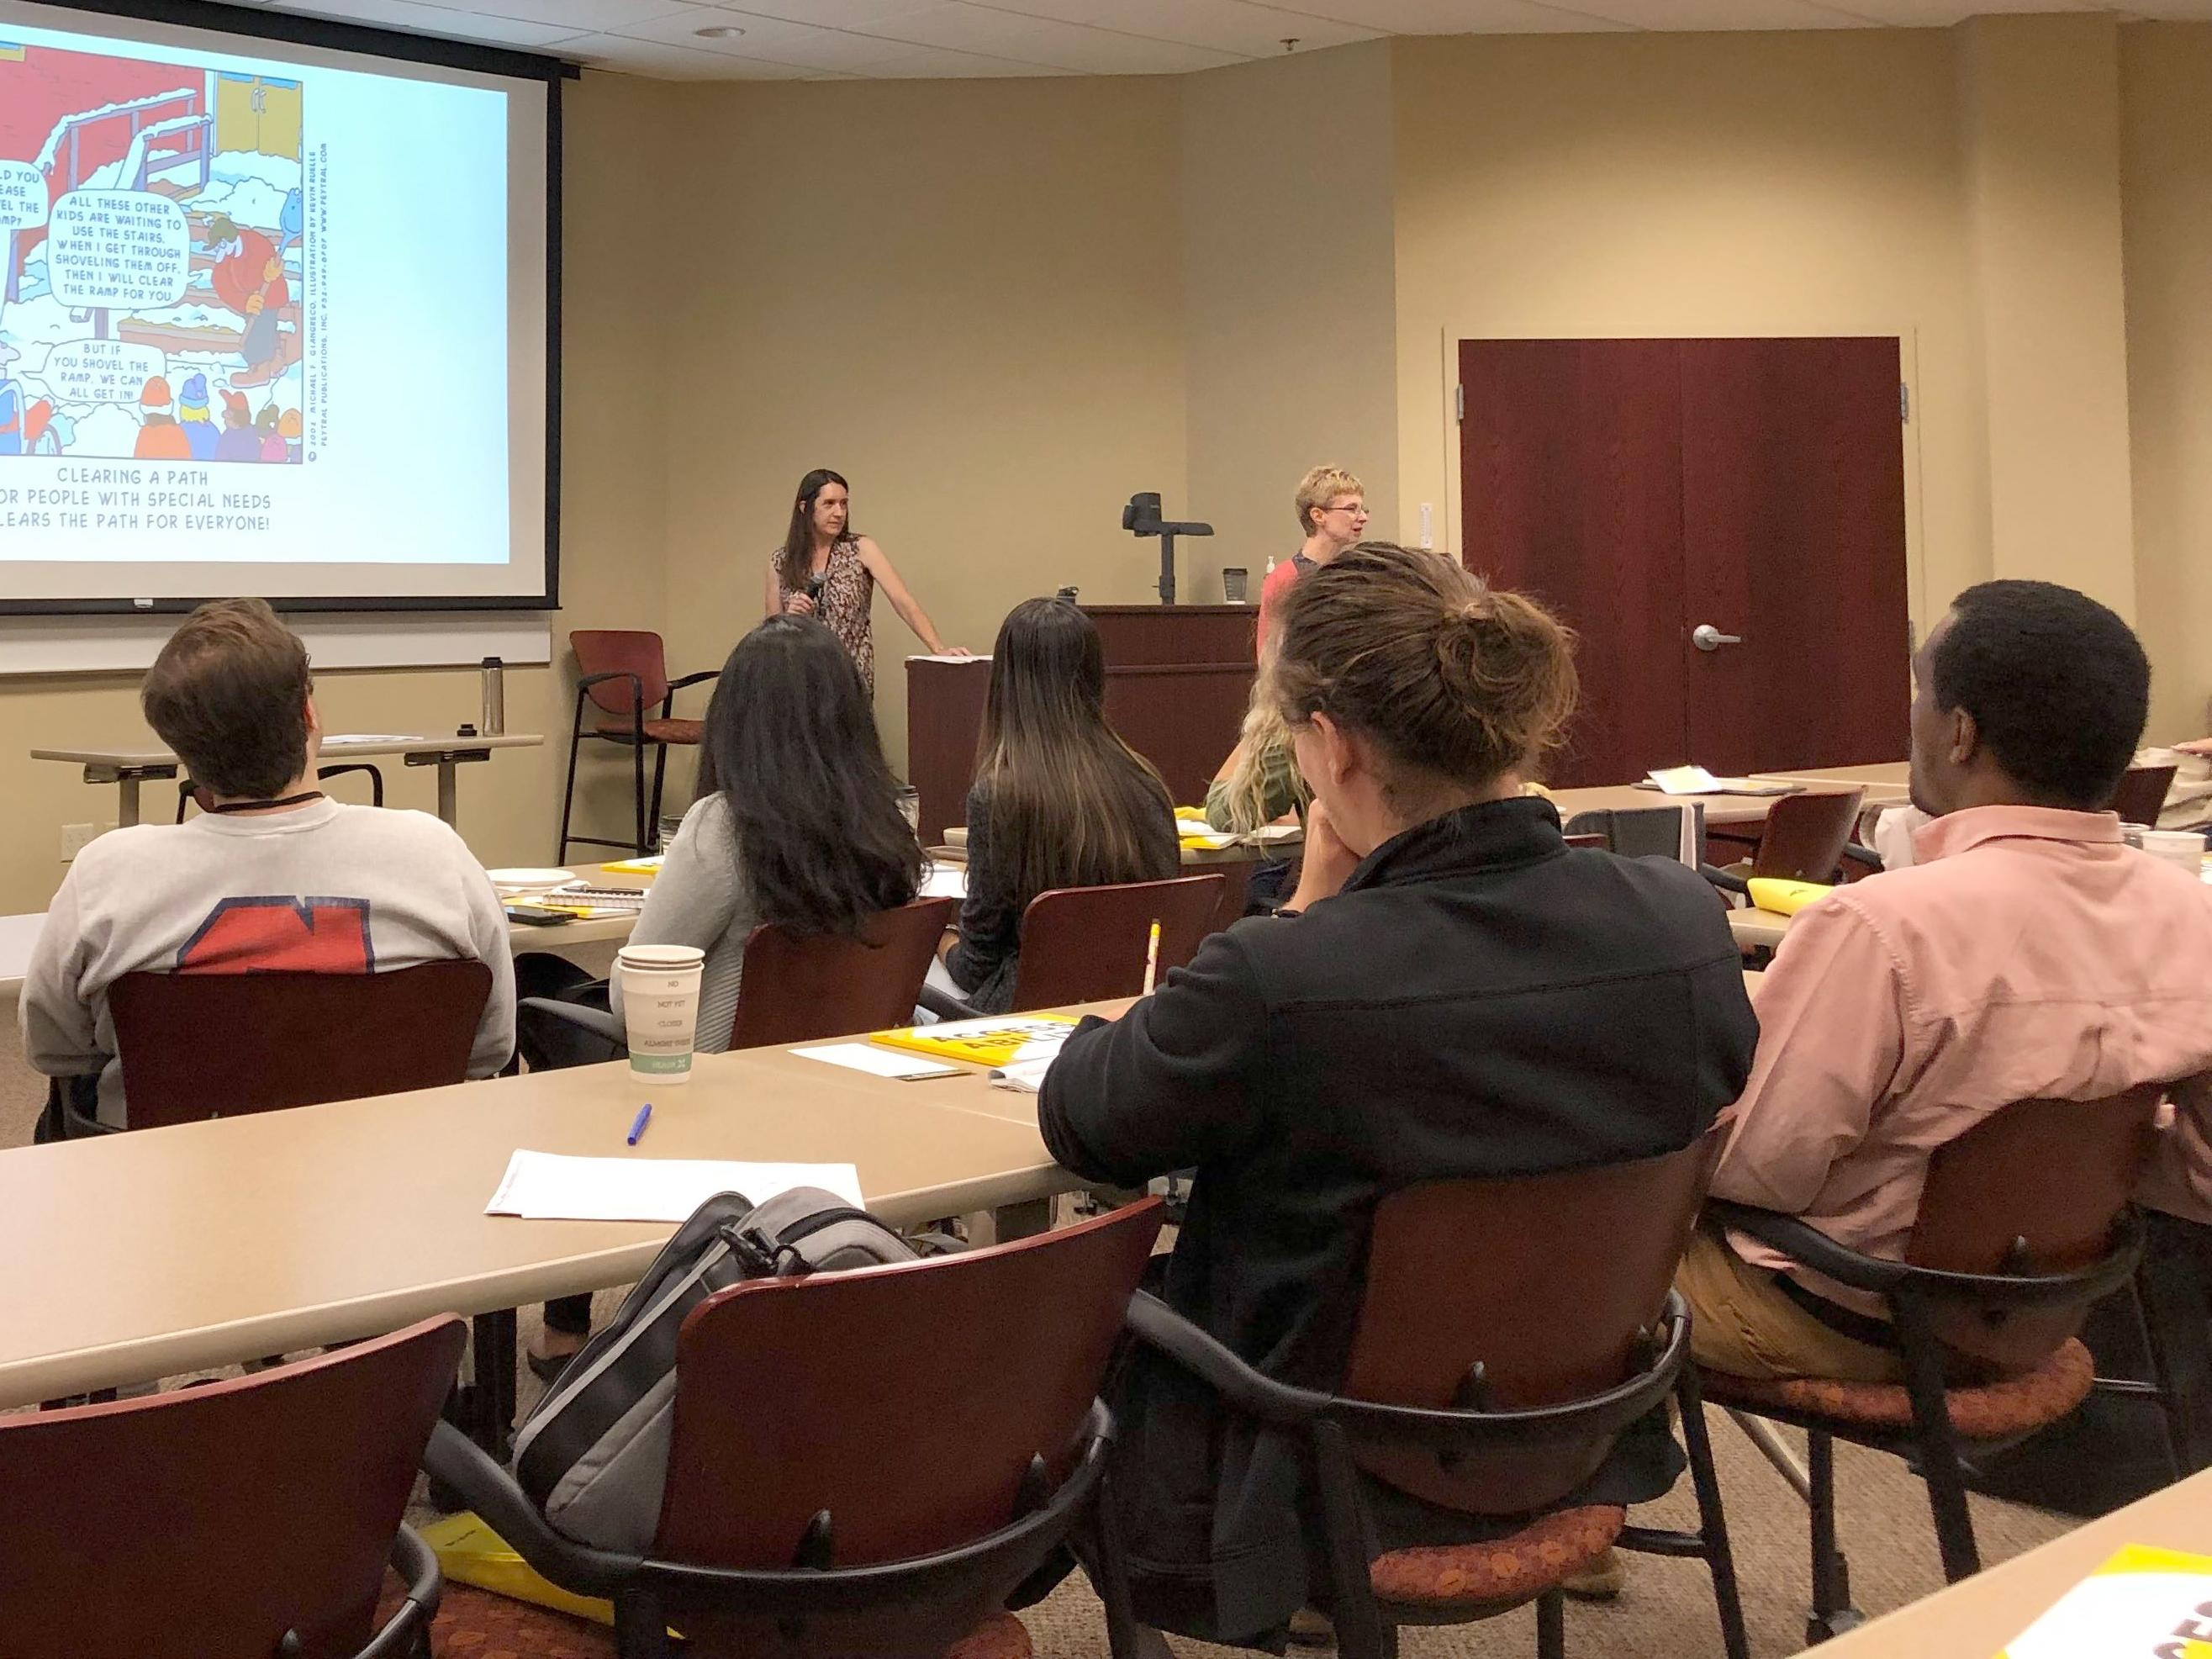 Kate Percival and Rebecca Mushtare lead an on-campus accessibility workshop